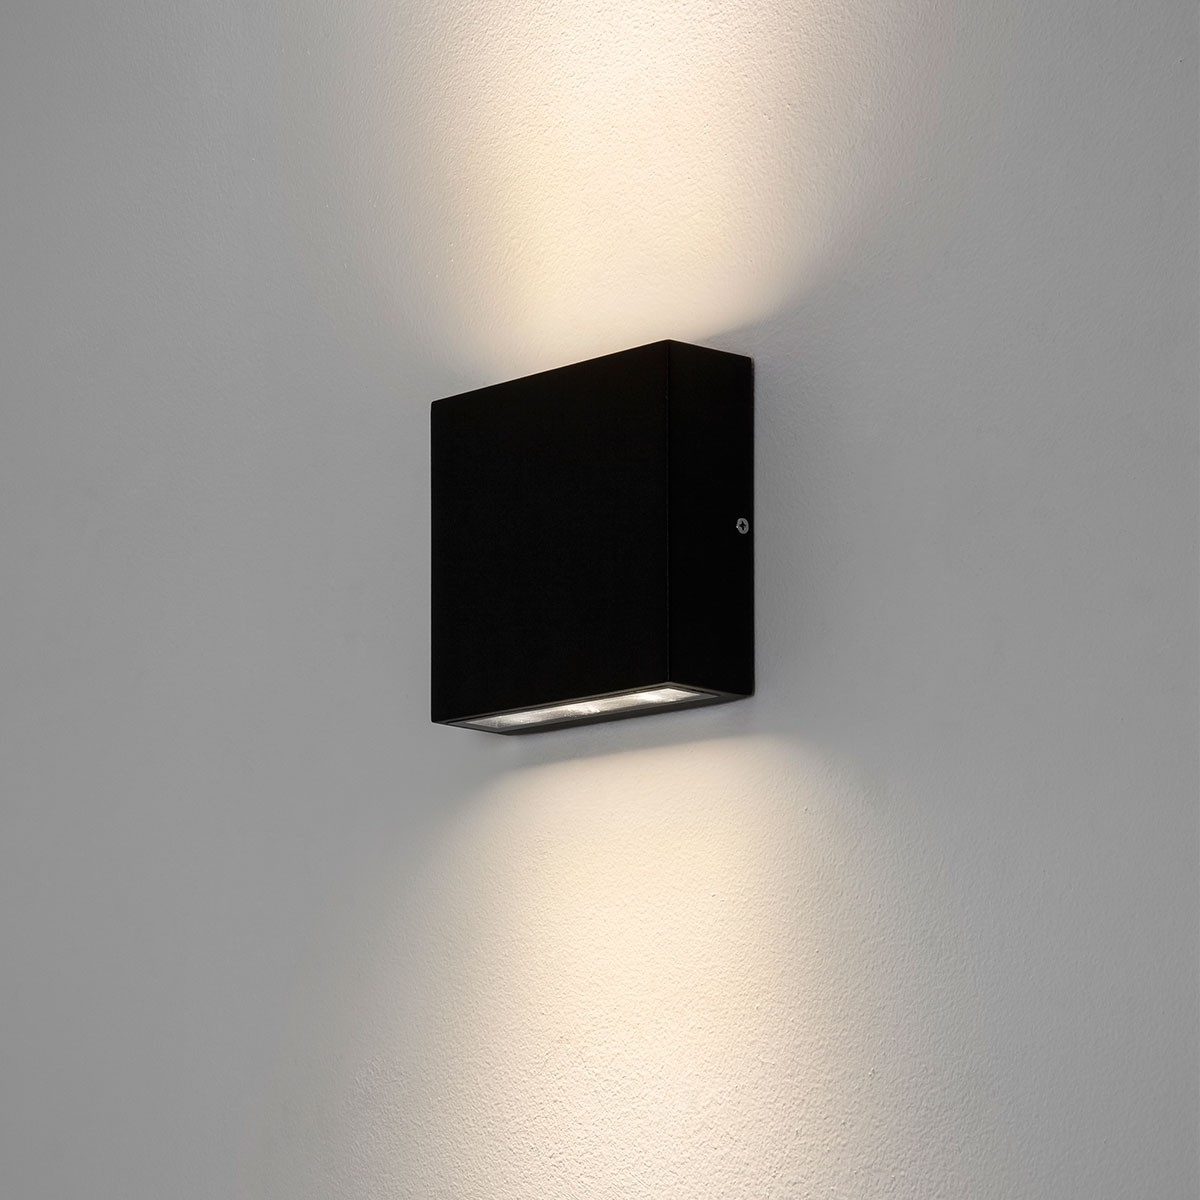 Newest Furniture : Astro Elis Twin Black Outdoor Led Wall Light Electrical With Regard To Outdoor Wall Lighting At Amazon (View 14 of 20)